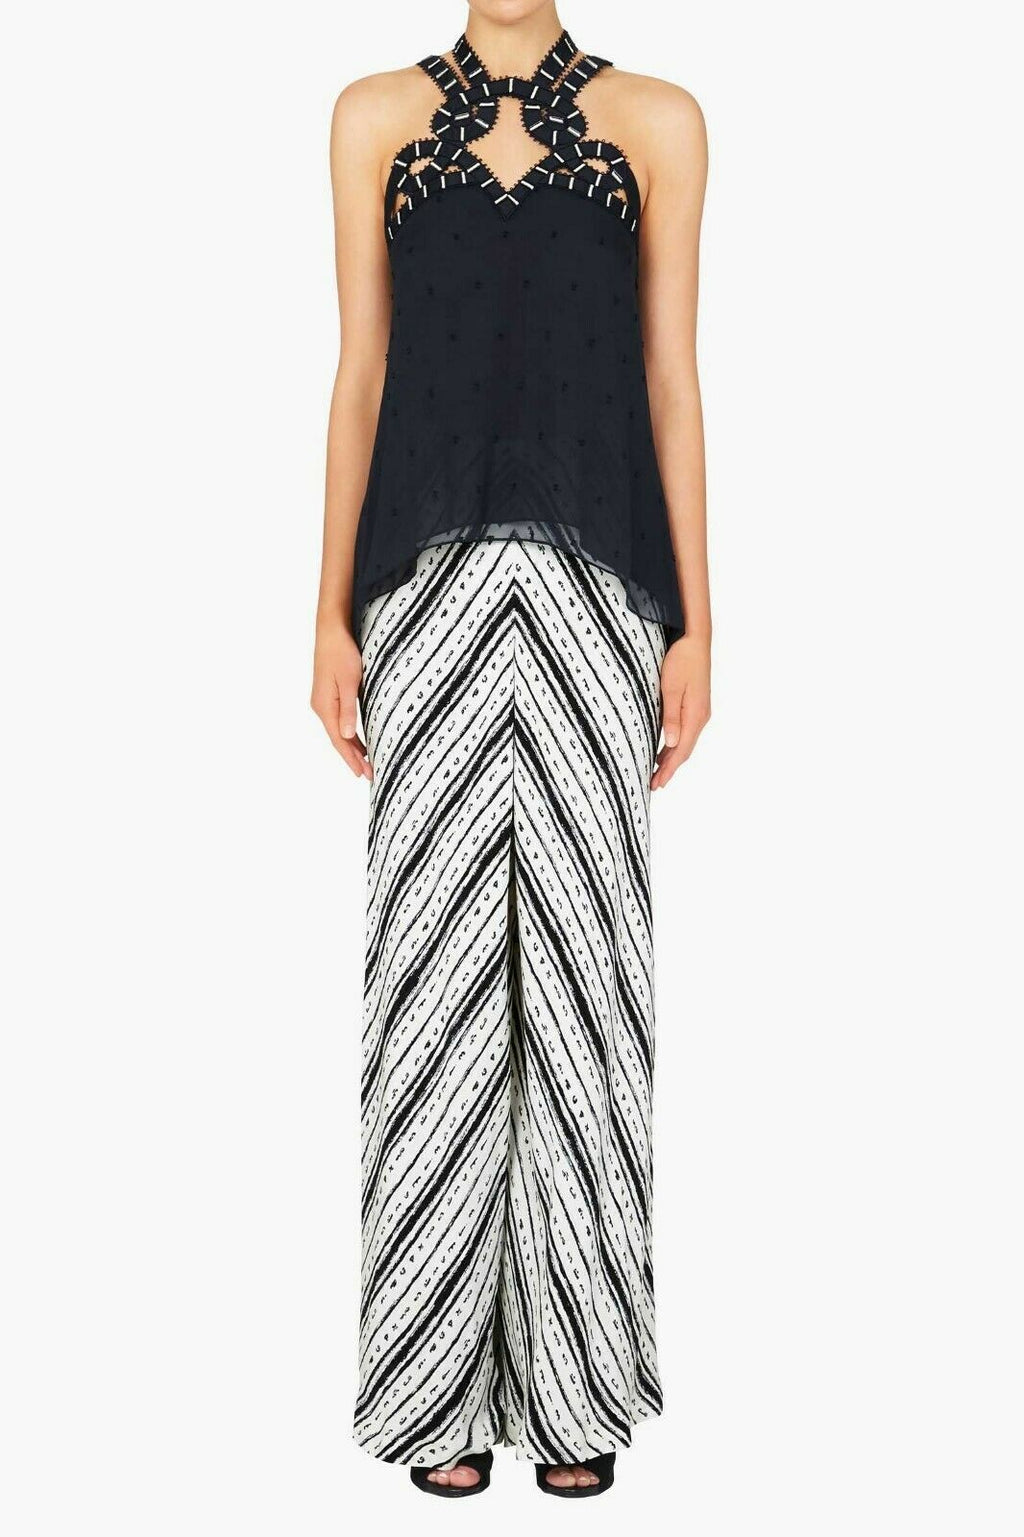 Sass and Bide Unwritten Tailored Culotte Pants